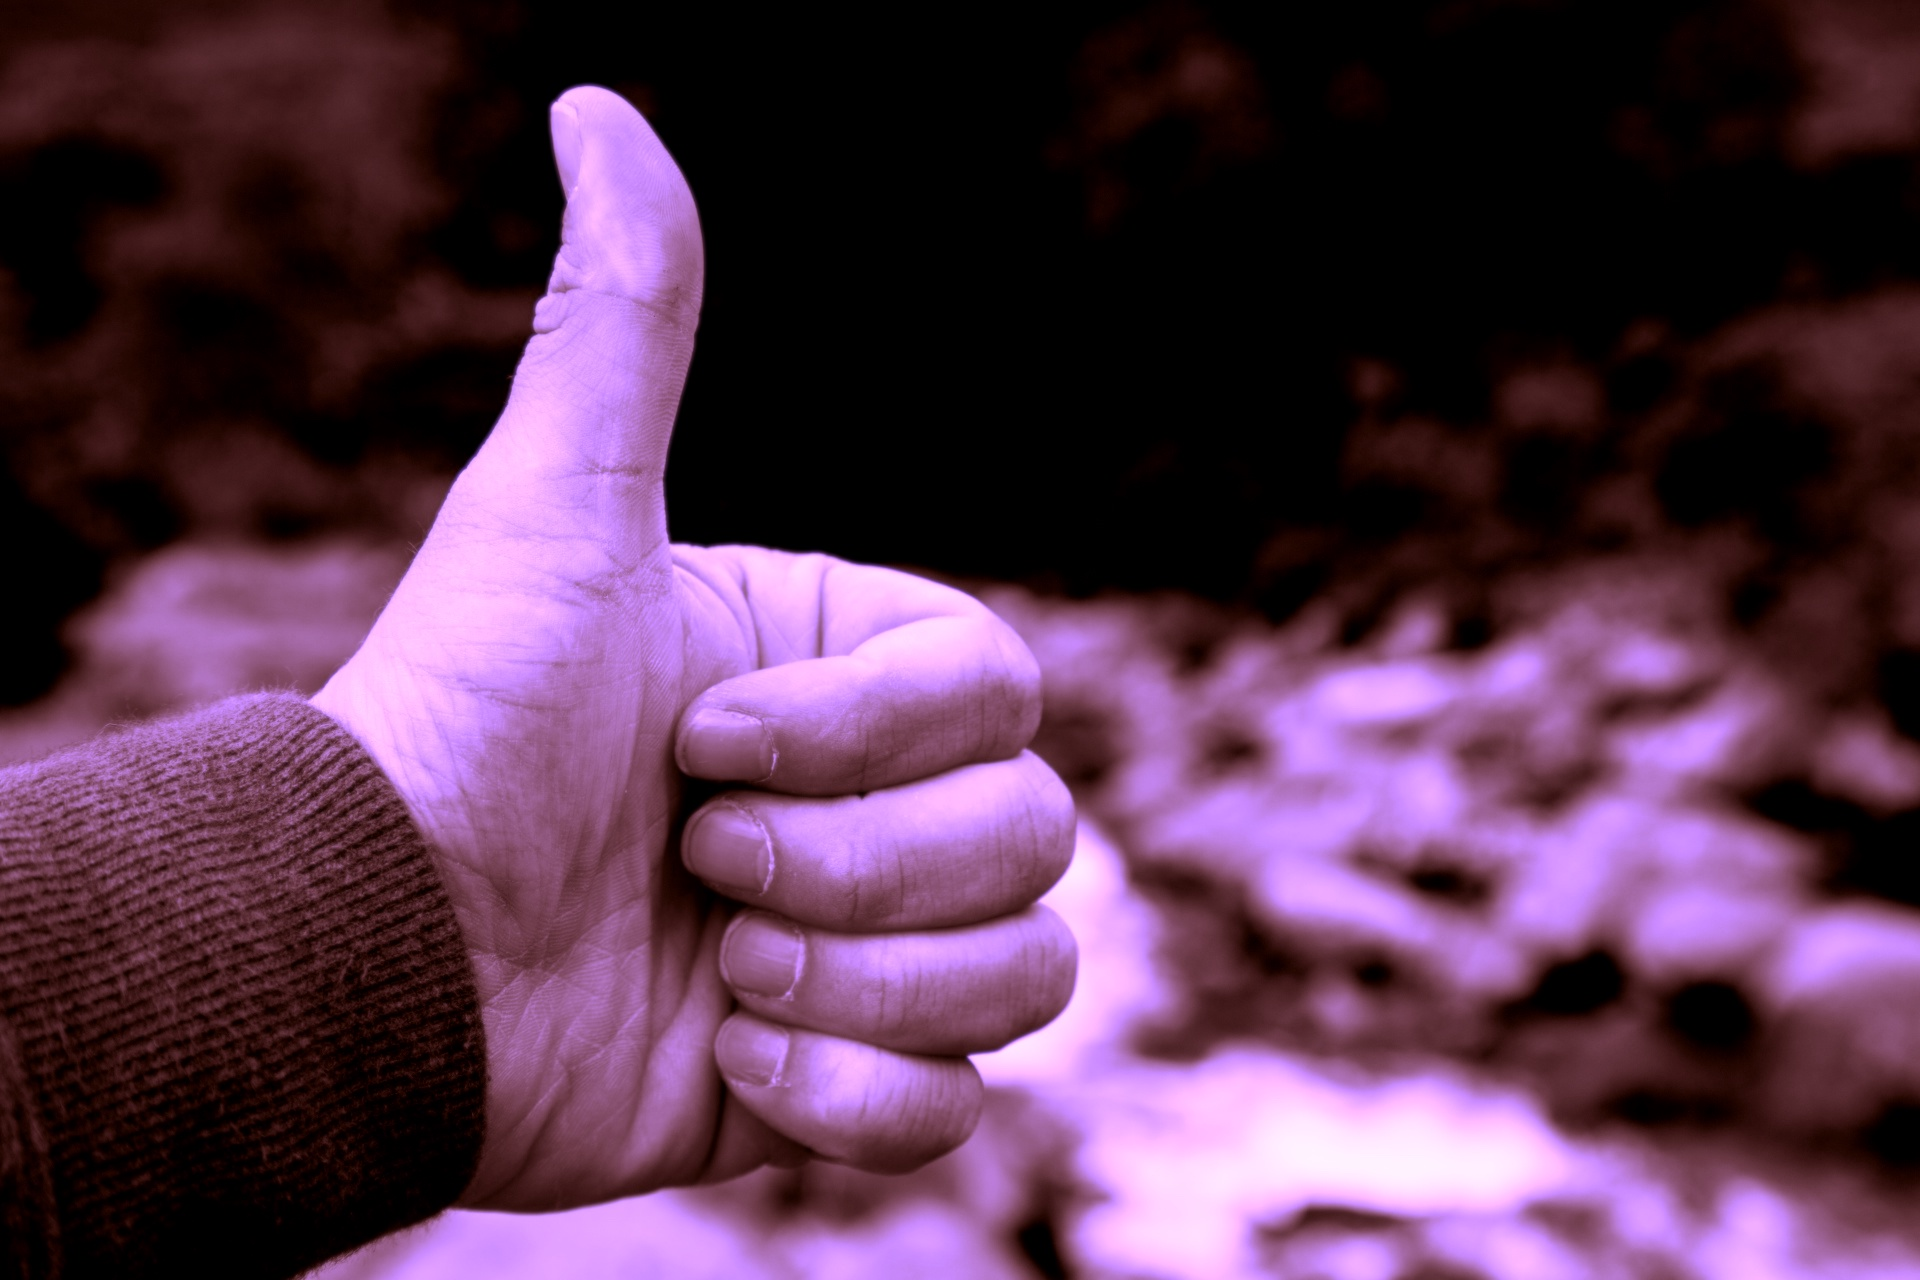 hand-showing-a-thumb-up-sign-1472905590W3g